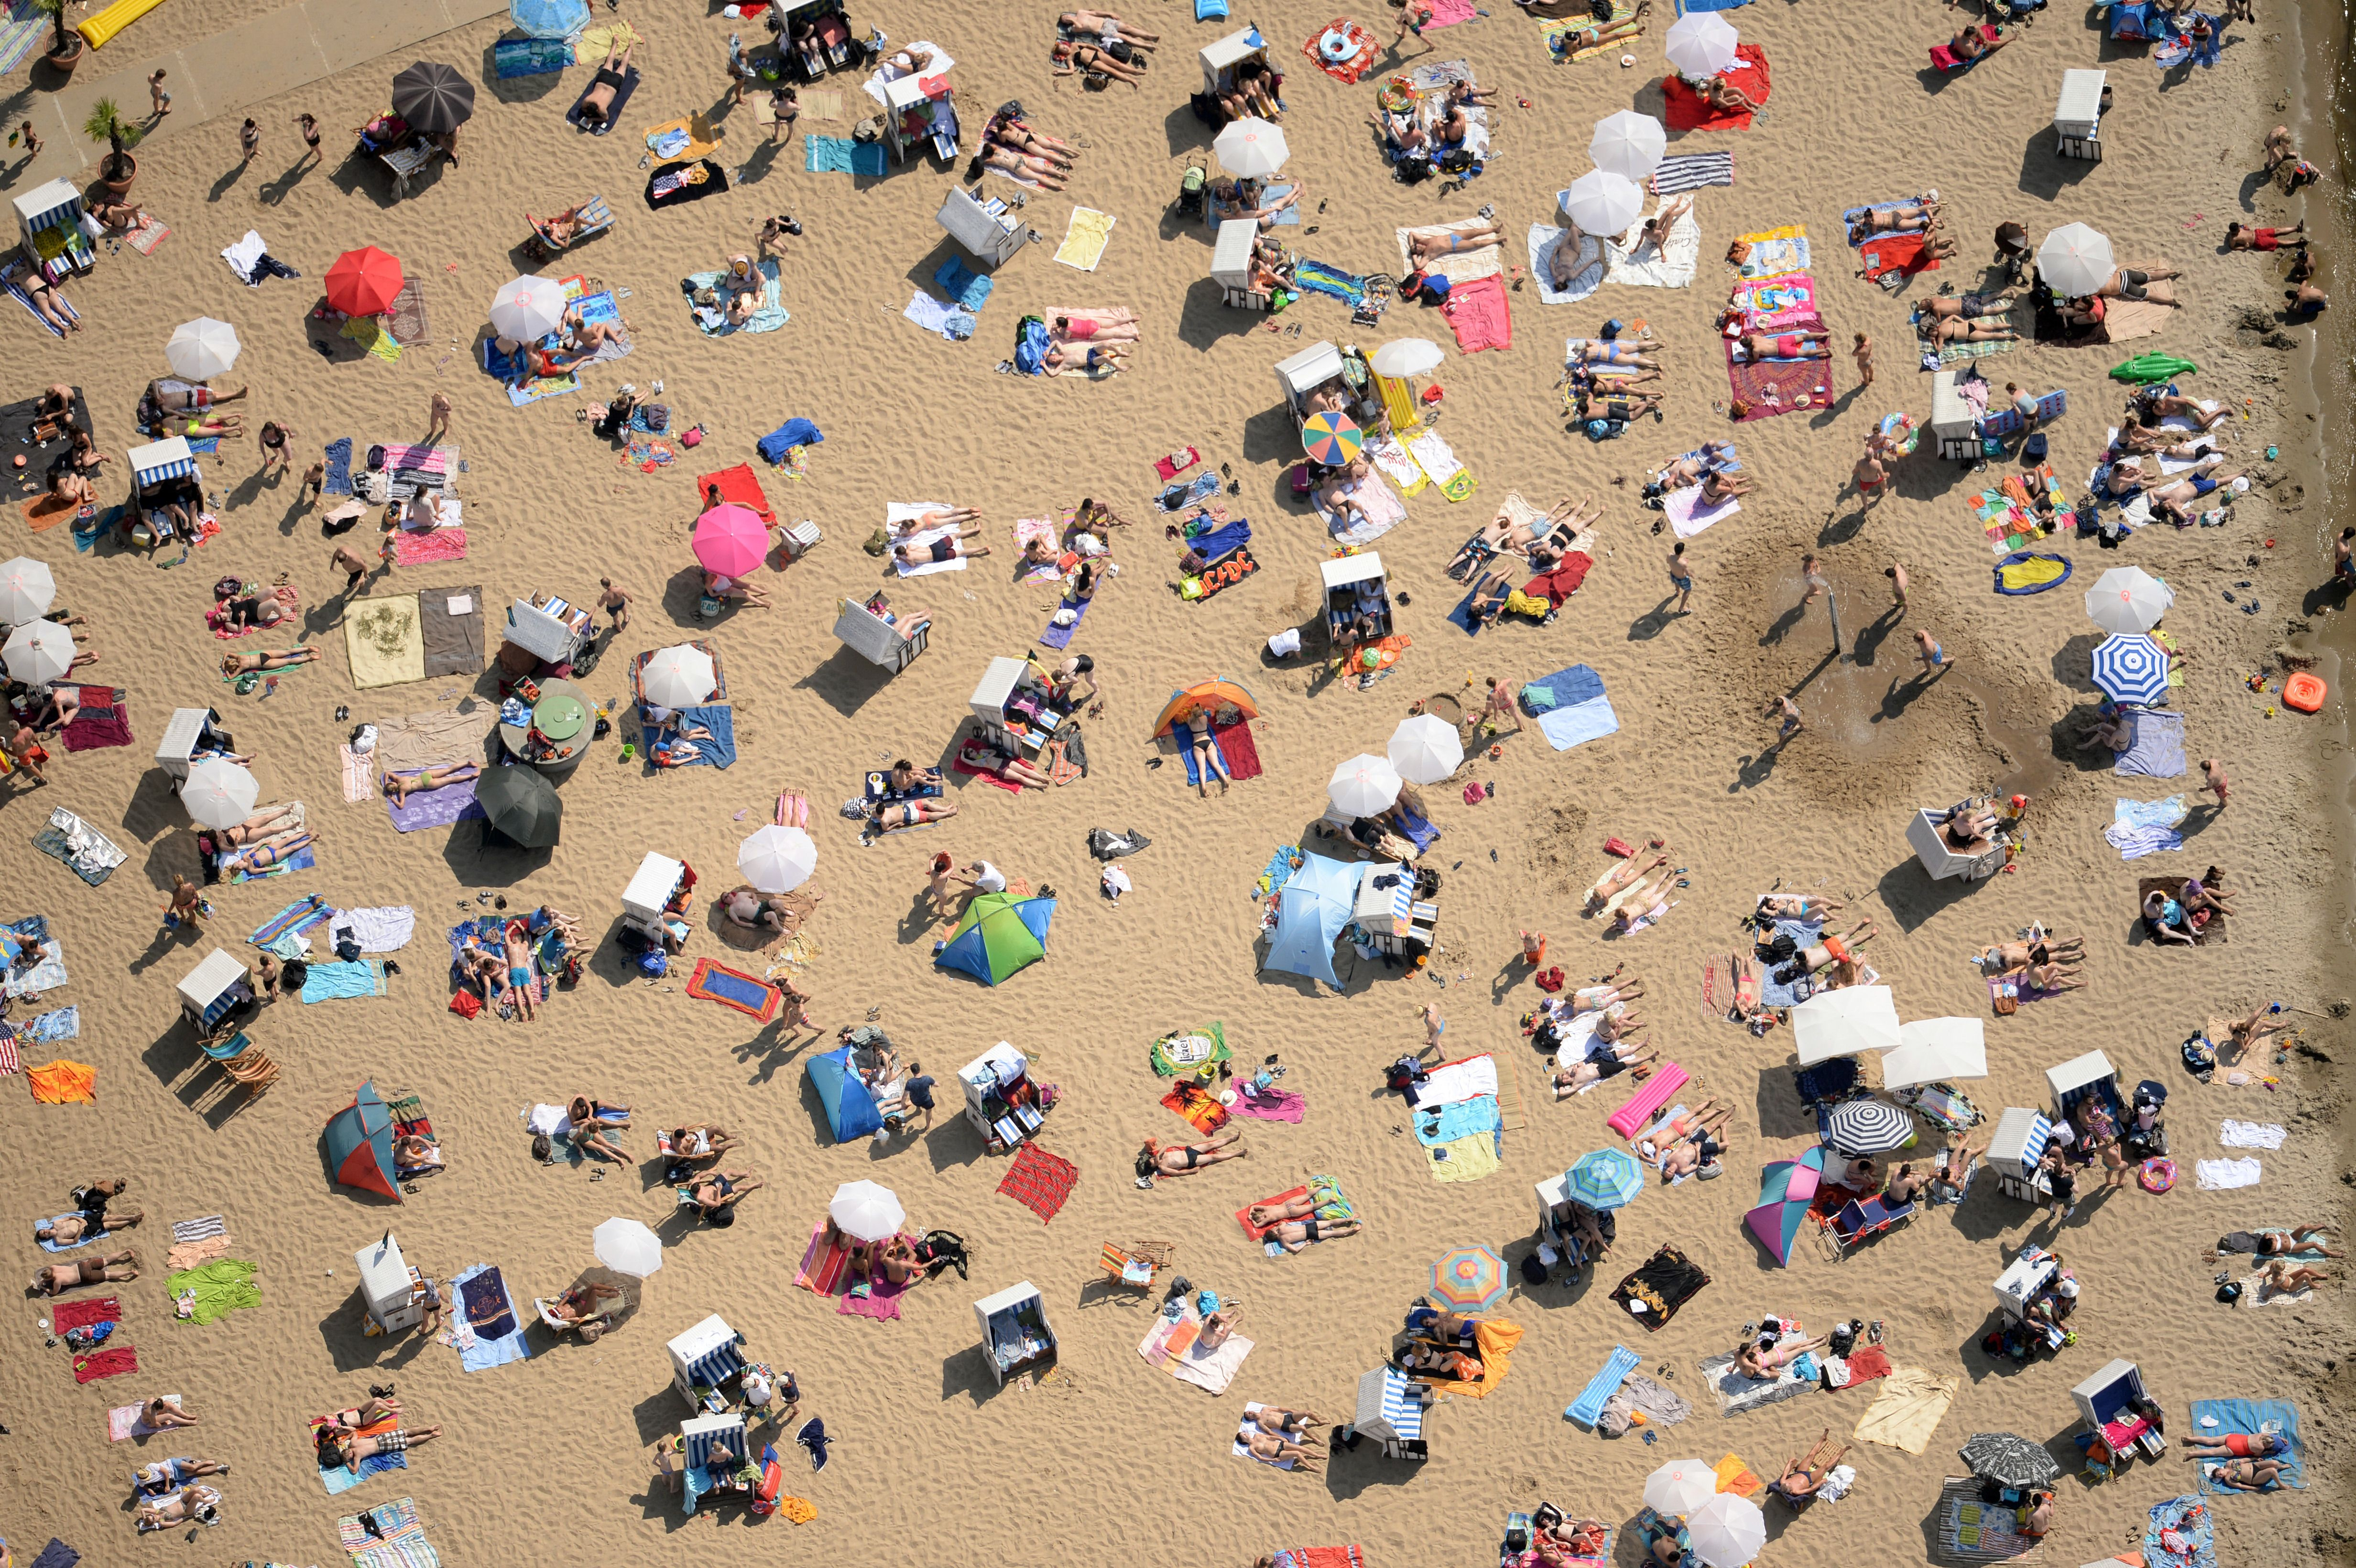 An aerial view shows people crowding the beach of the lake Wannsee in Berlin, eastern Germany, on June 8, 2014.